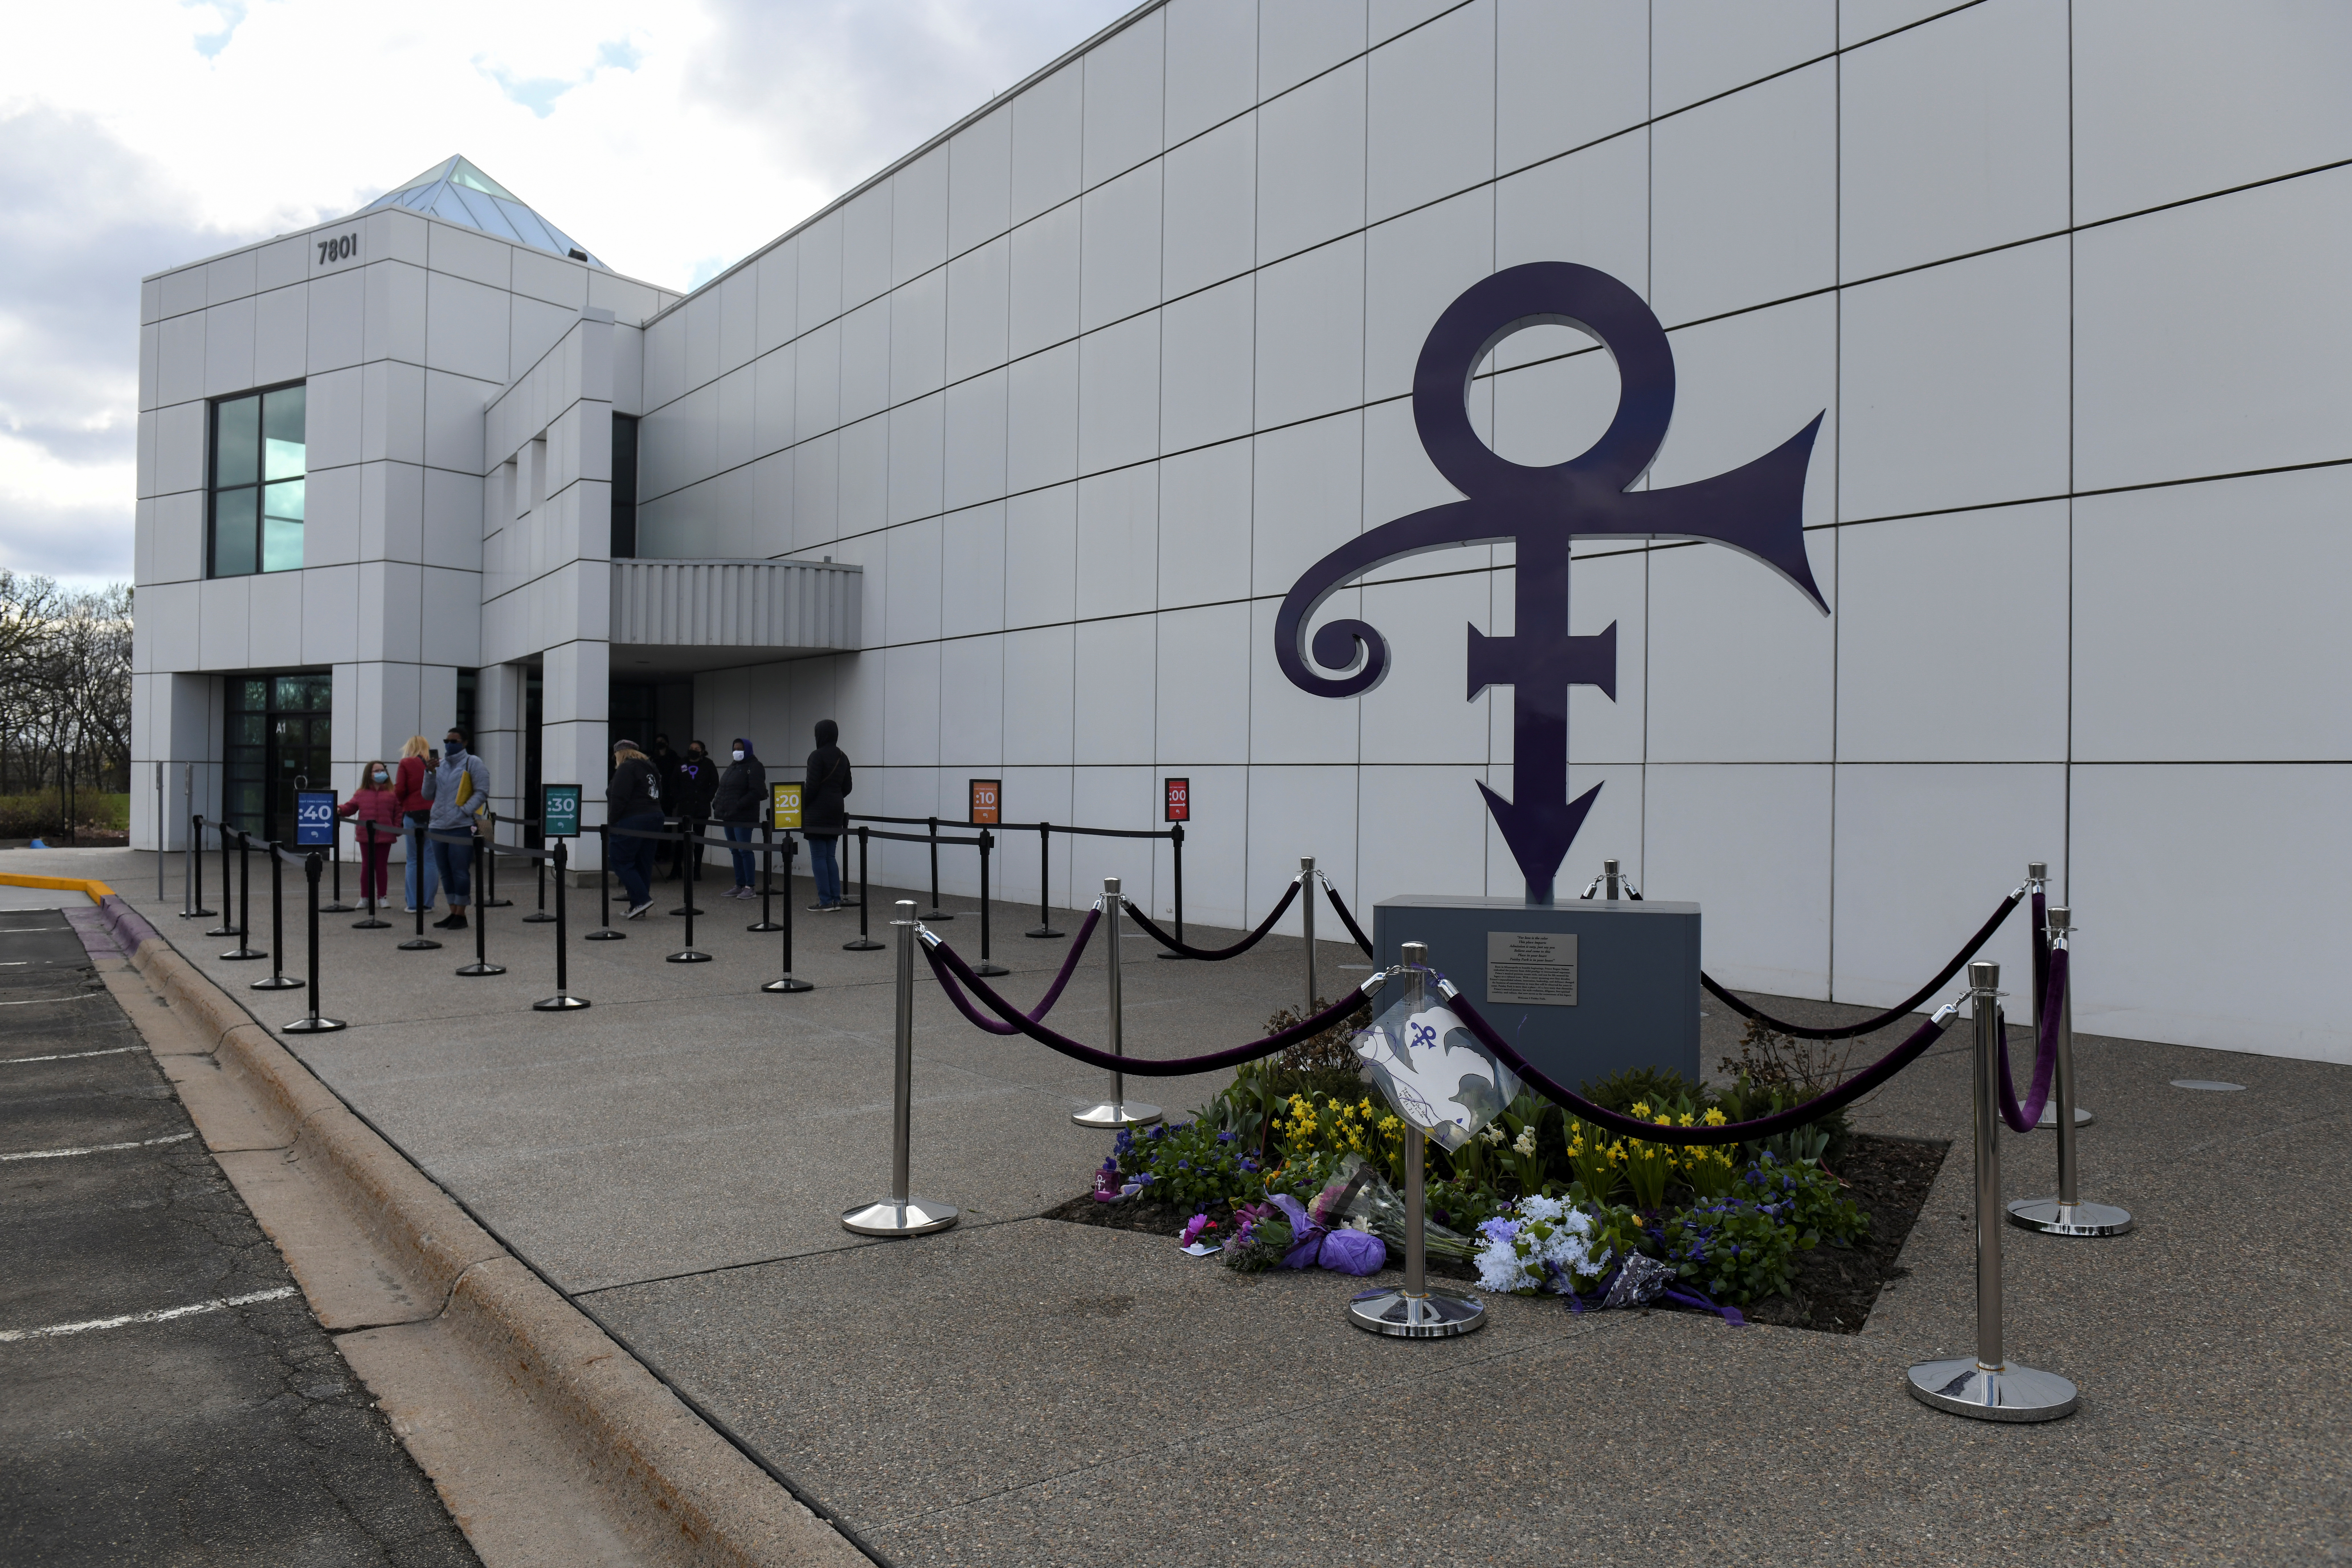 Visitors wait in line outside Paisley Park on the fifth anniversary of Prince's death in Chanhassen, Minnesota, U.S., April 21, 2021. REUTERS/Nicholas Pfosi